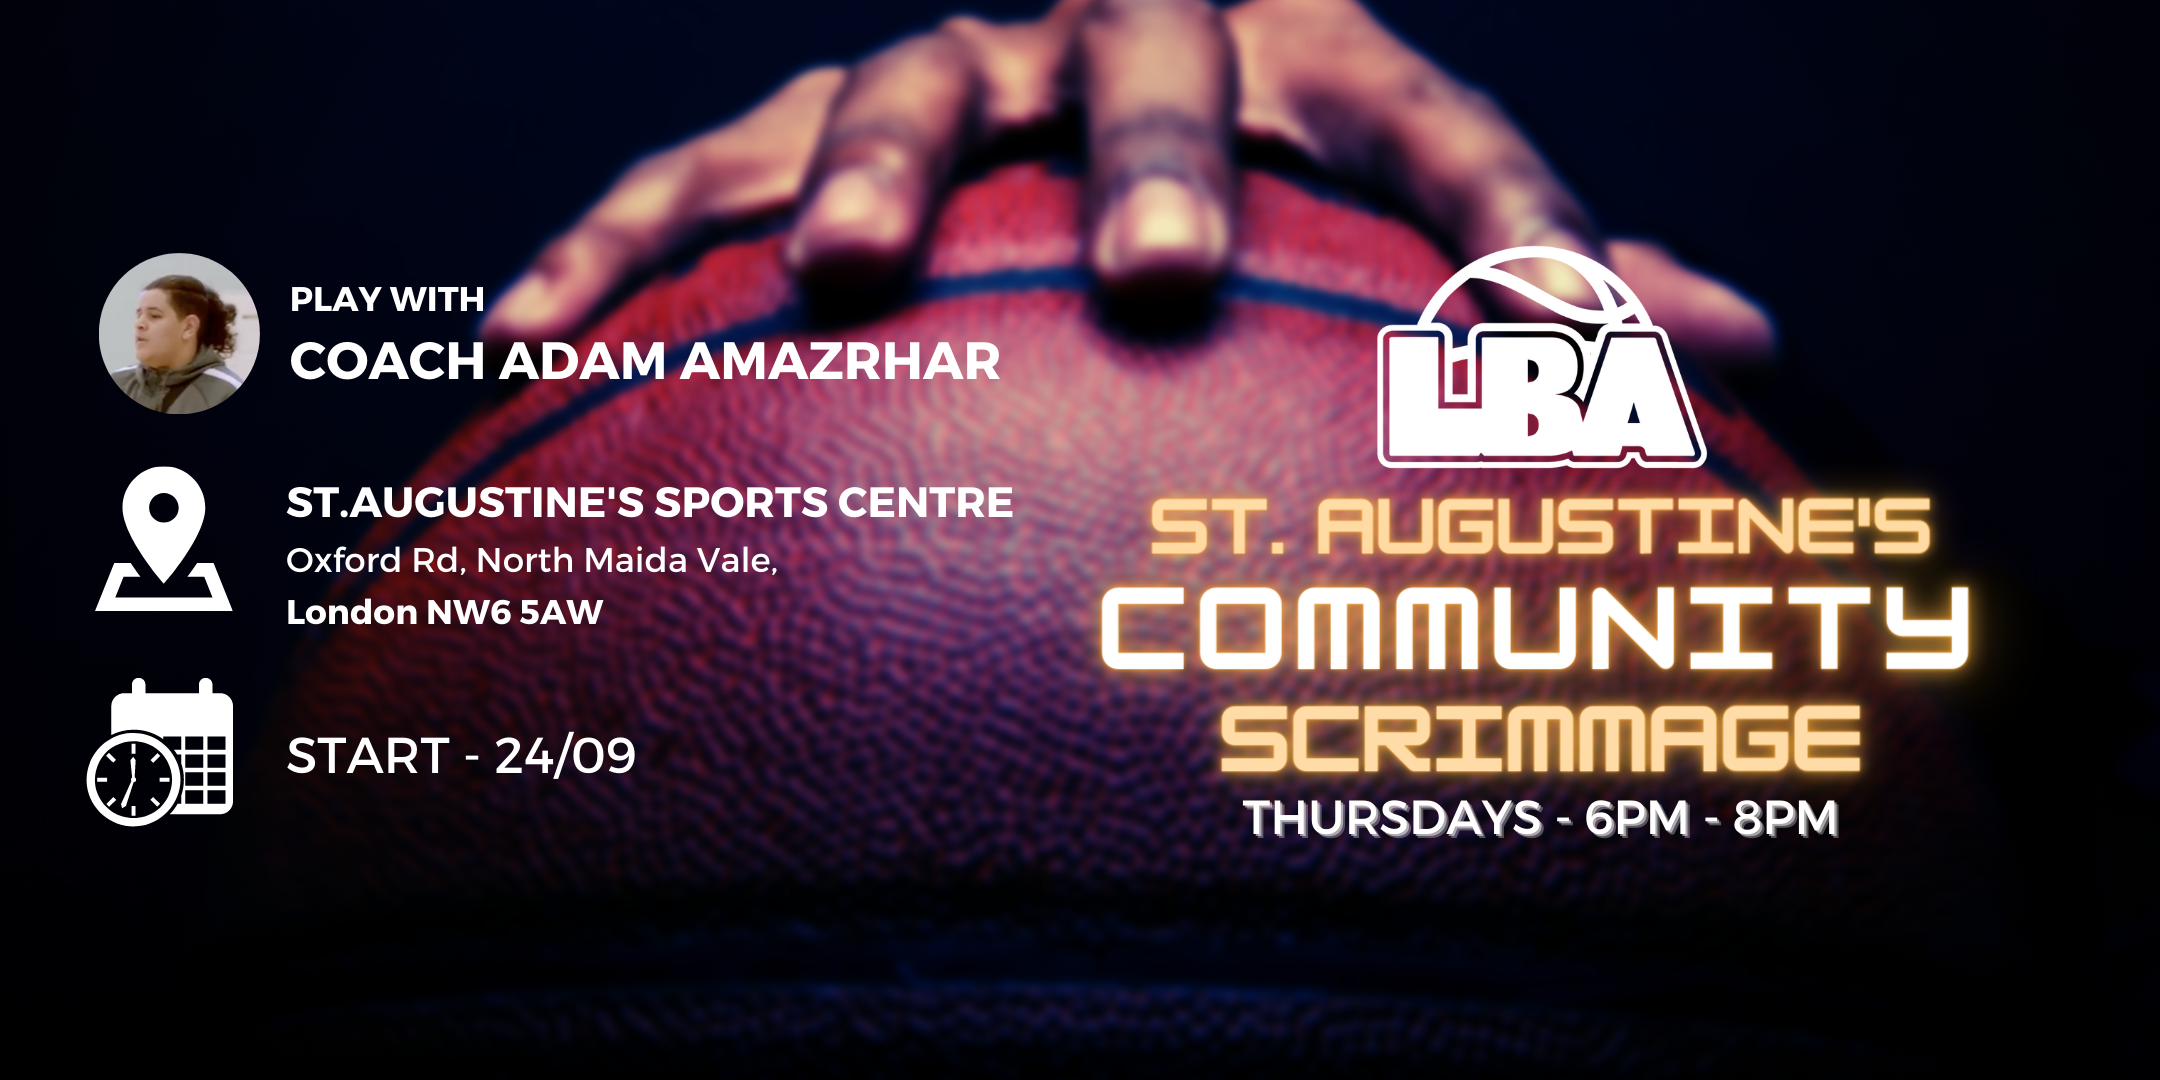 U18 St Augustine's Community Scrimmages - Weekly Basketball